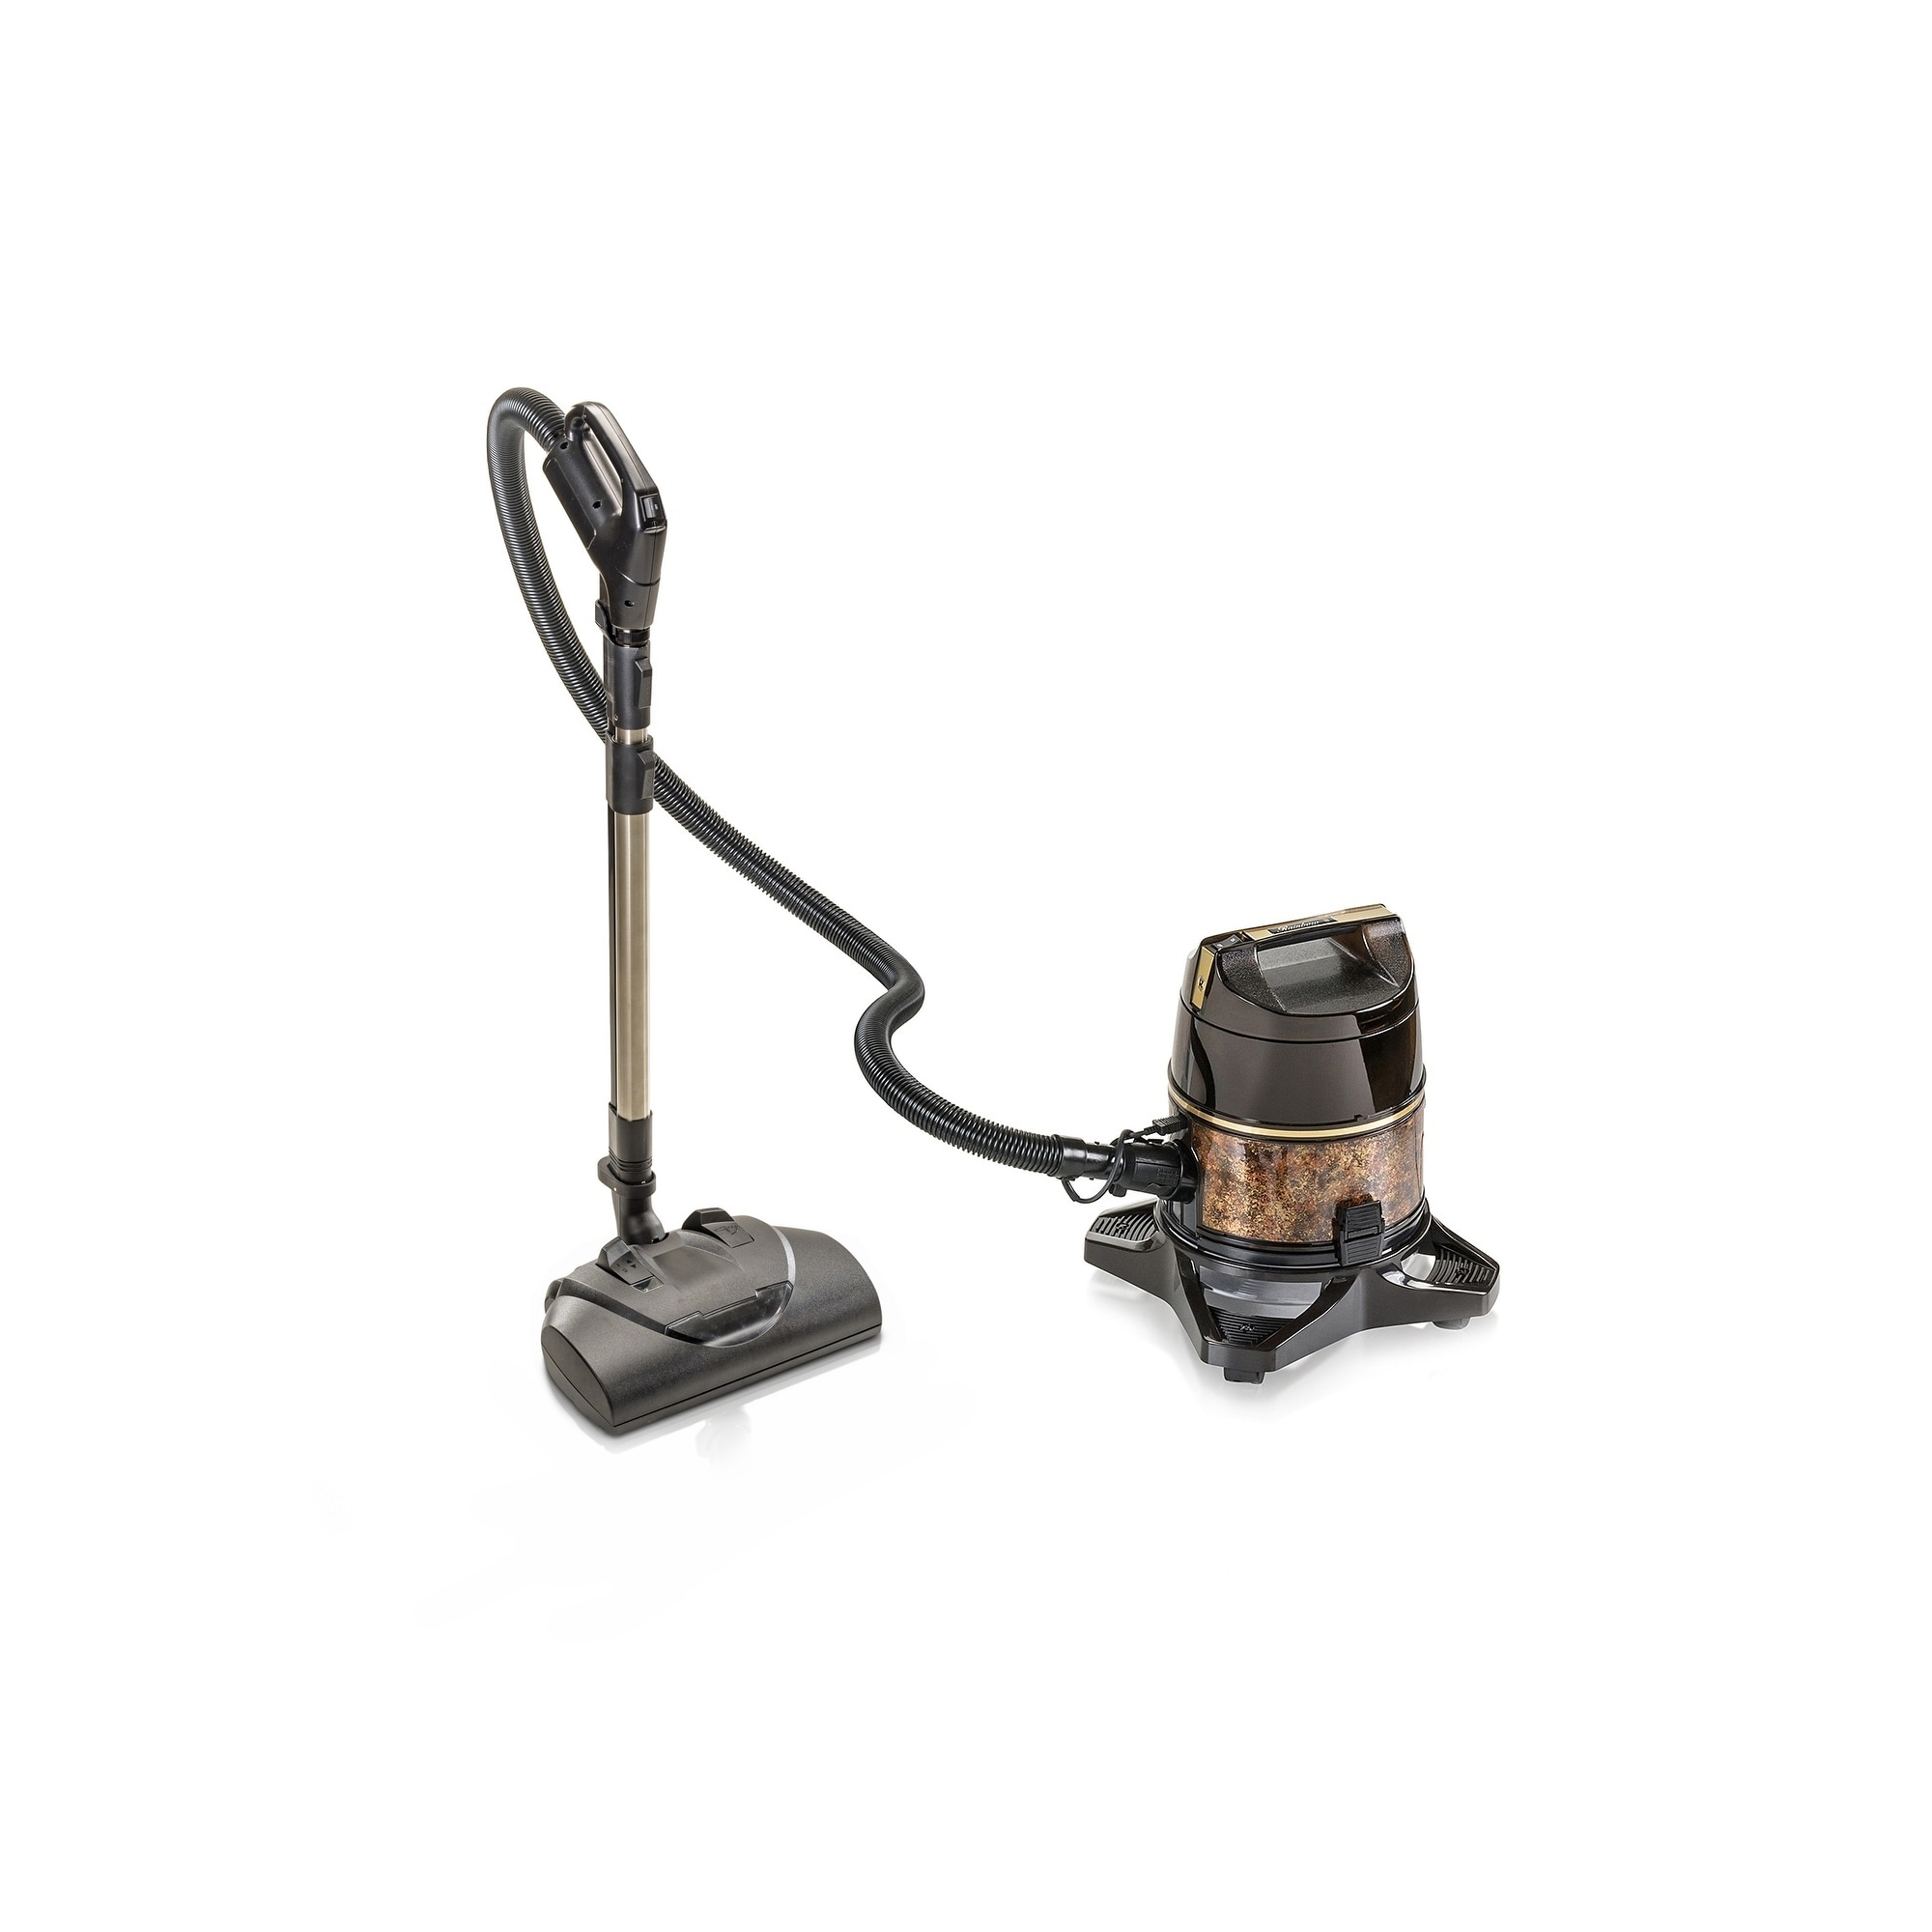 Shop Reconditioned Rainbow SE Canister Vacuum W Shampooer GV Power Nozzle -  Free Shipping Today - Overstock.com - 21336003